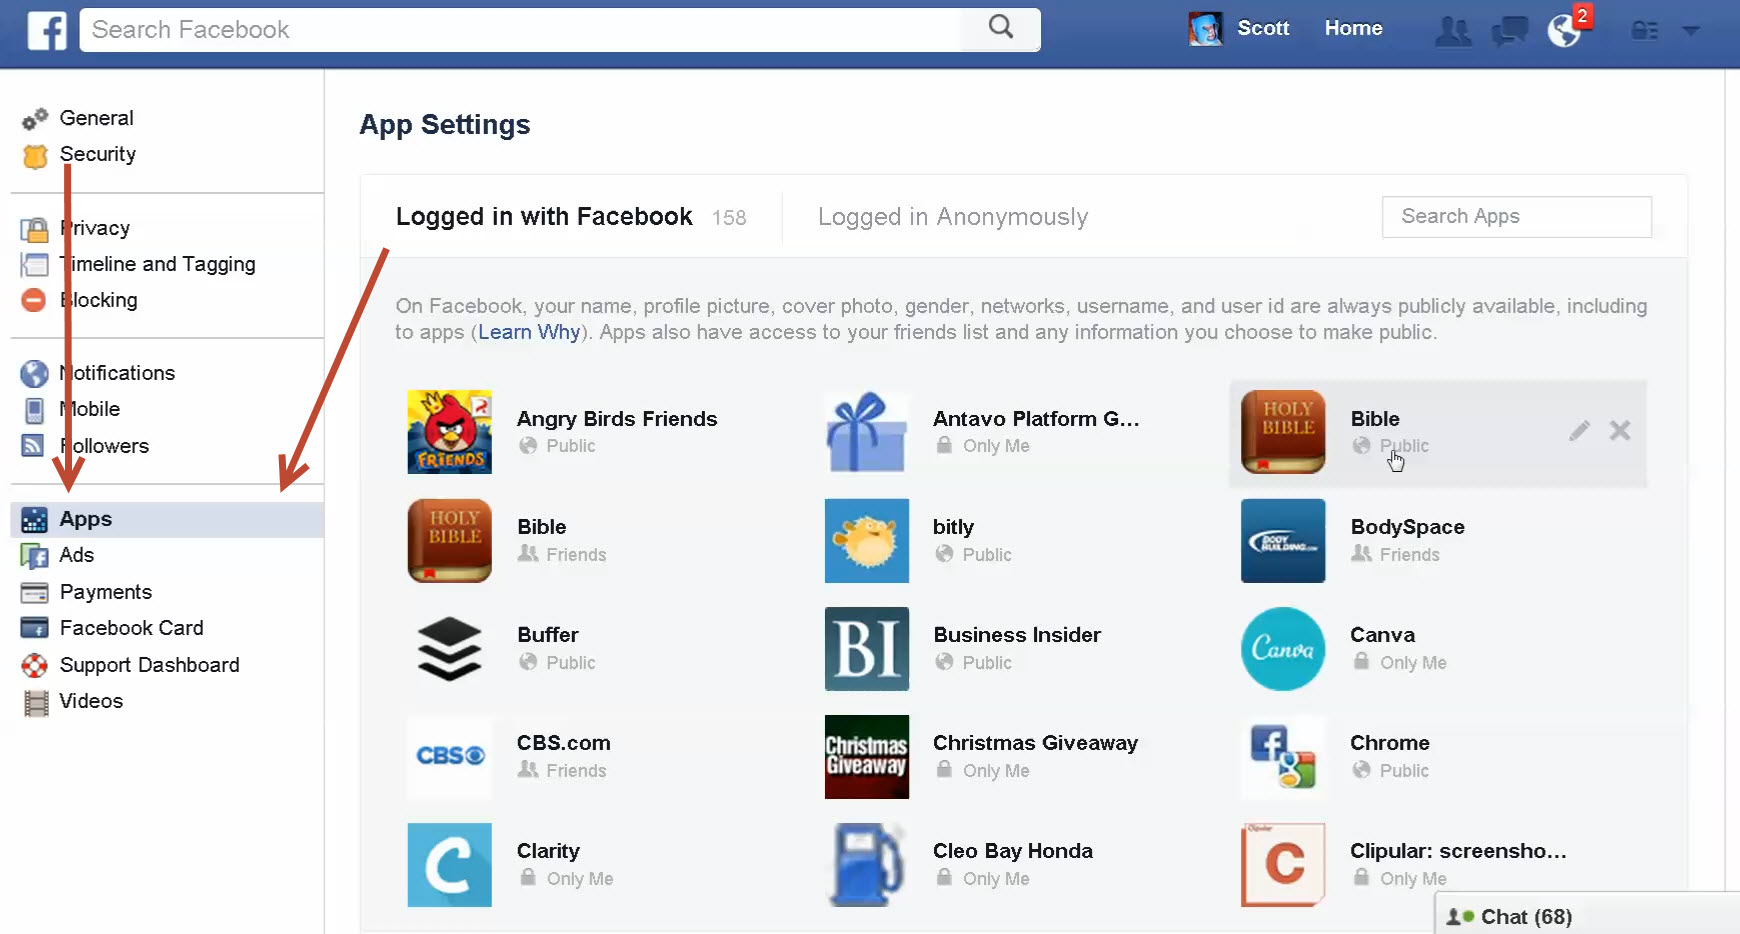 Now You Can See All The Apps You're Connected To On Facebook